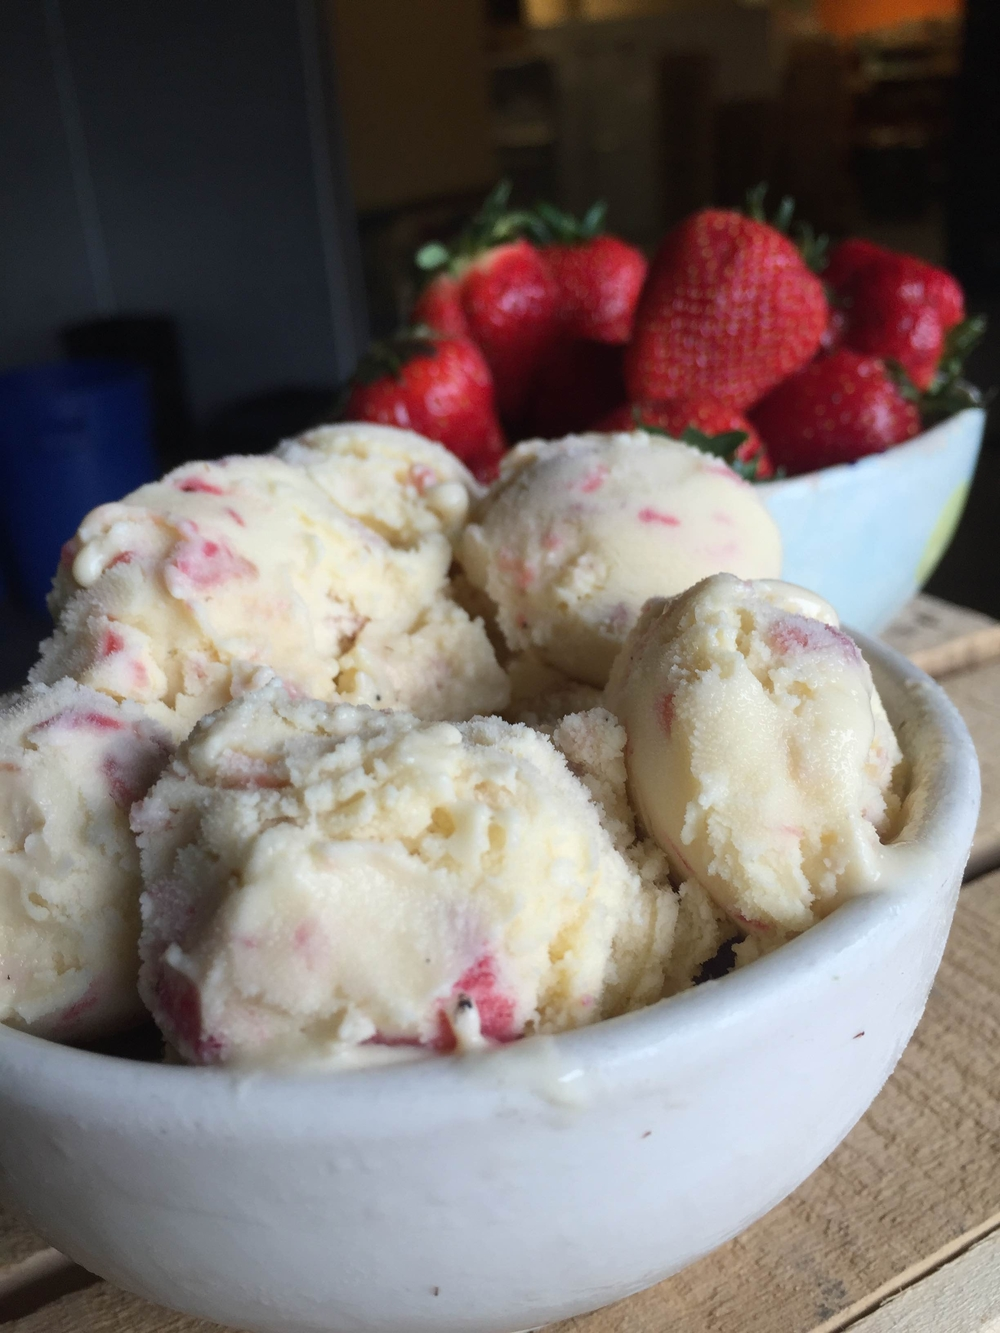 strawberry rhubarb ice cream.jpg